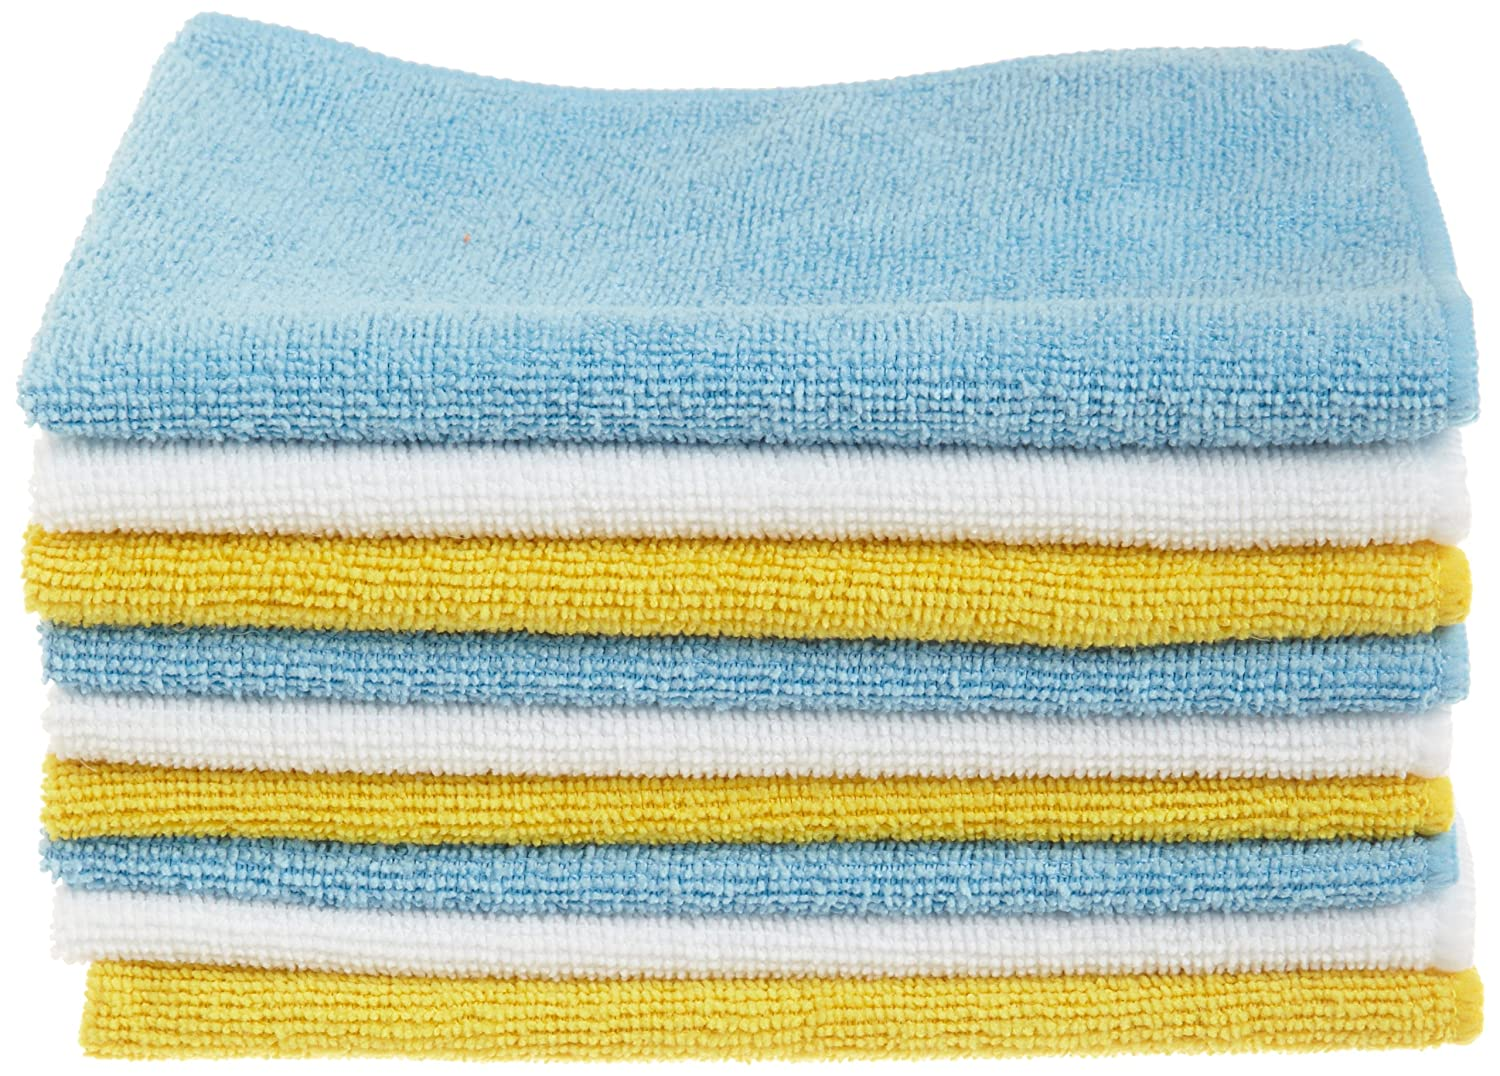 $20.62 AmazonBasics Microfiber Cleaning Cloth – 48 Pack